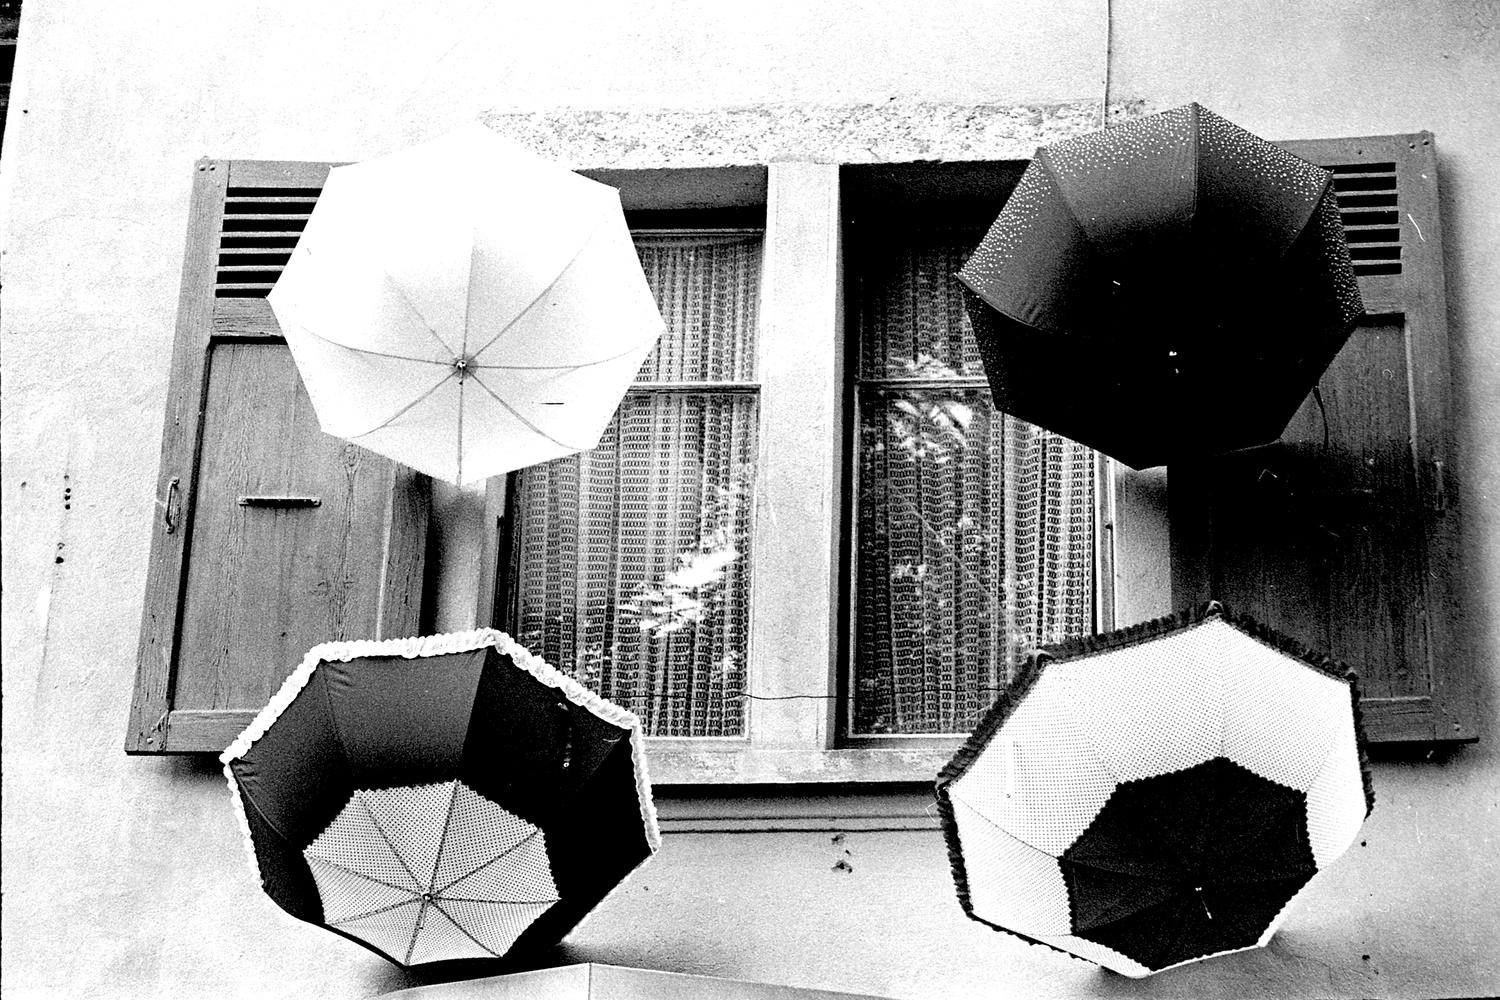 Window Umbrellas, Yvoire, France 2017   Edition 1 of 2